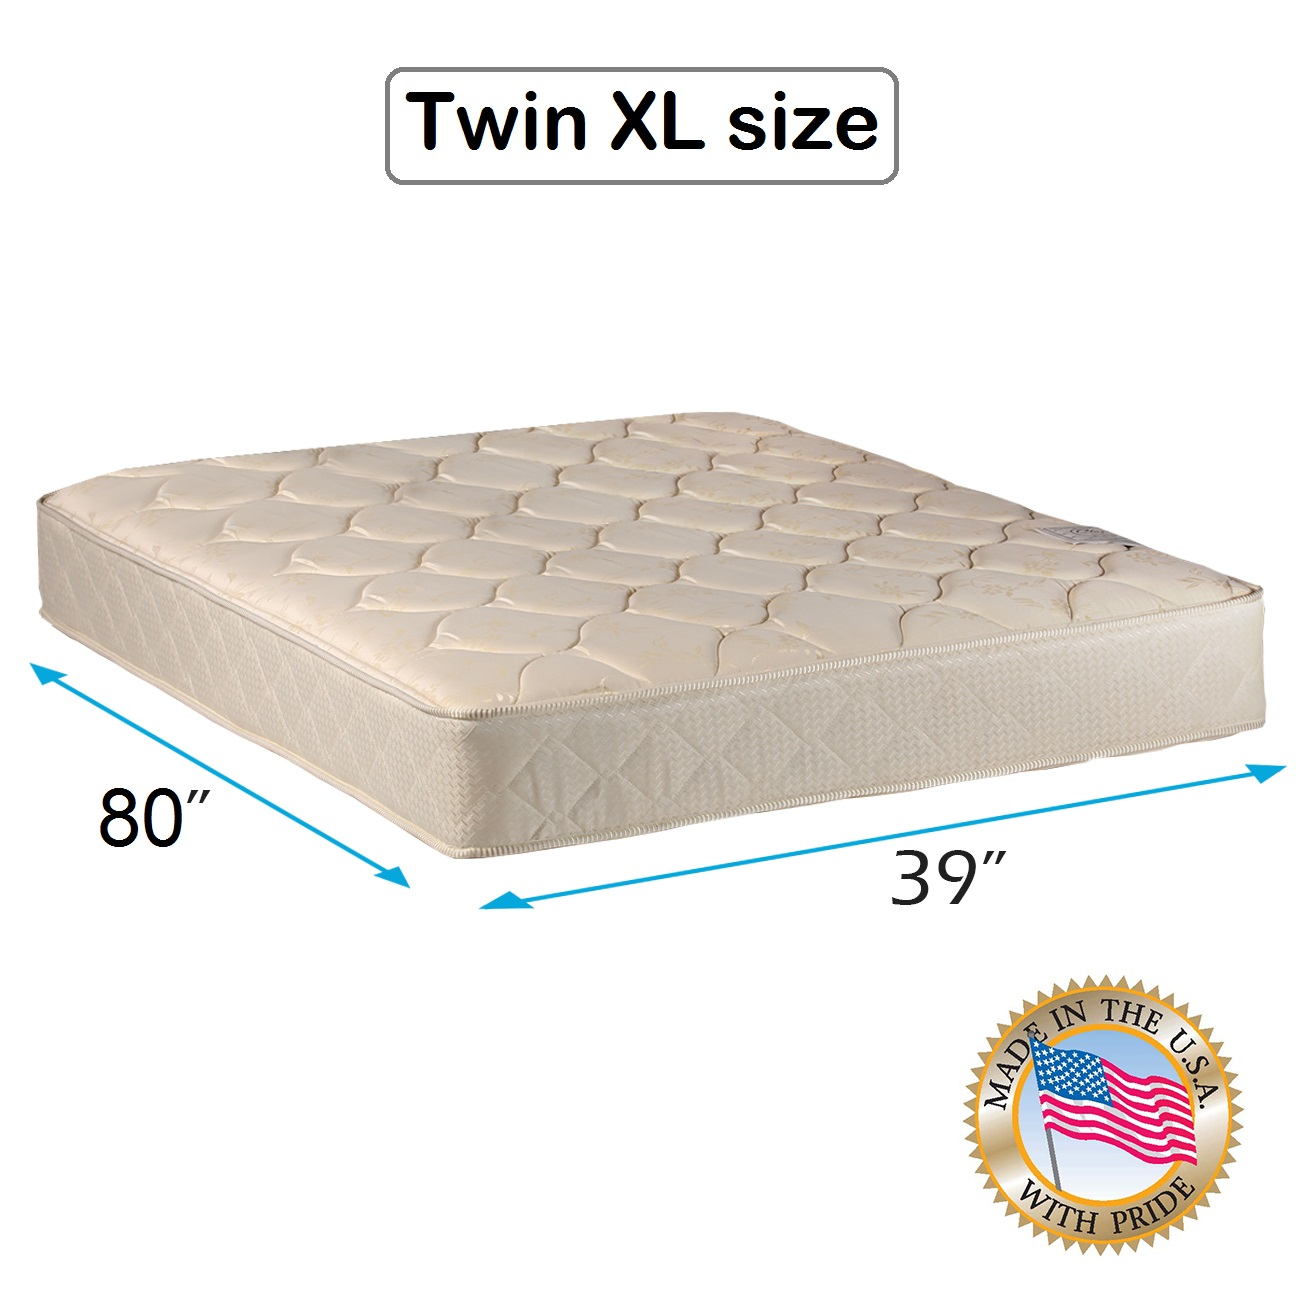 "Comfort Classic Gentle Firm (Twin Extra Long - 39""x80""x9"") Mattress Only - Fully Assembled, Orthopedic, Good for your back, Superior Quality - Long Lasting and 1 Sided - By Dream Solutions USA"